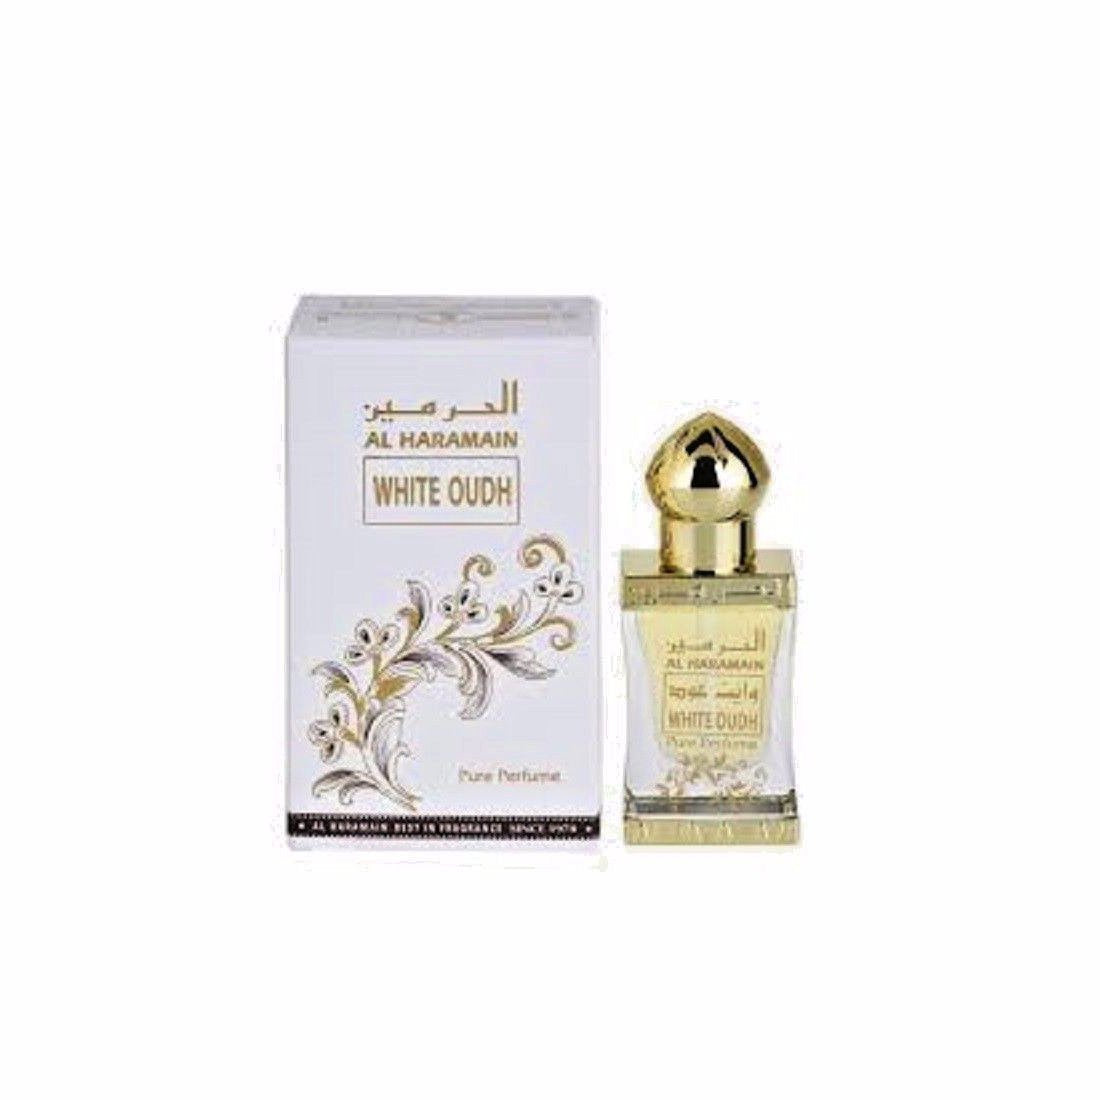 Al Haramain White Oudh Attar - 12 ml